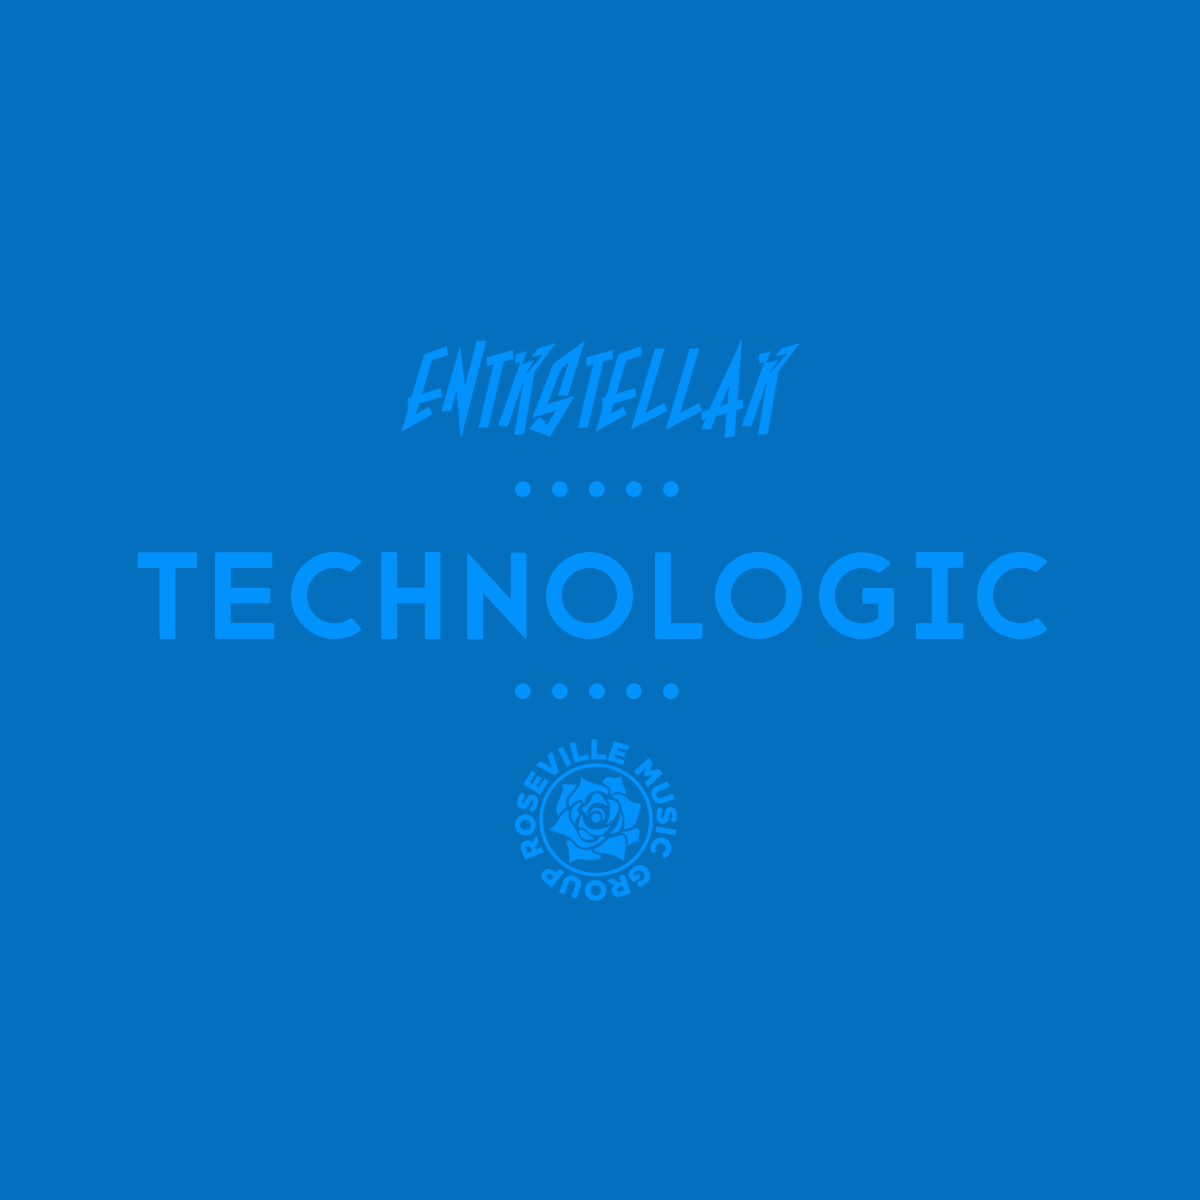 SINGLE - ENTRSTELLAR - Technologic